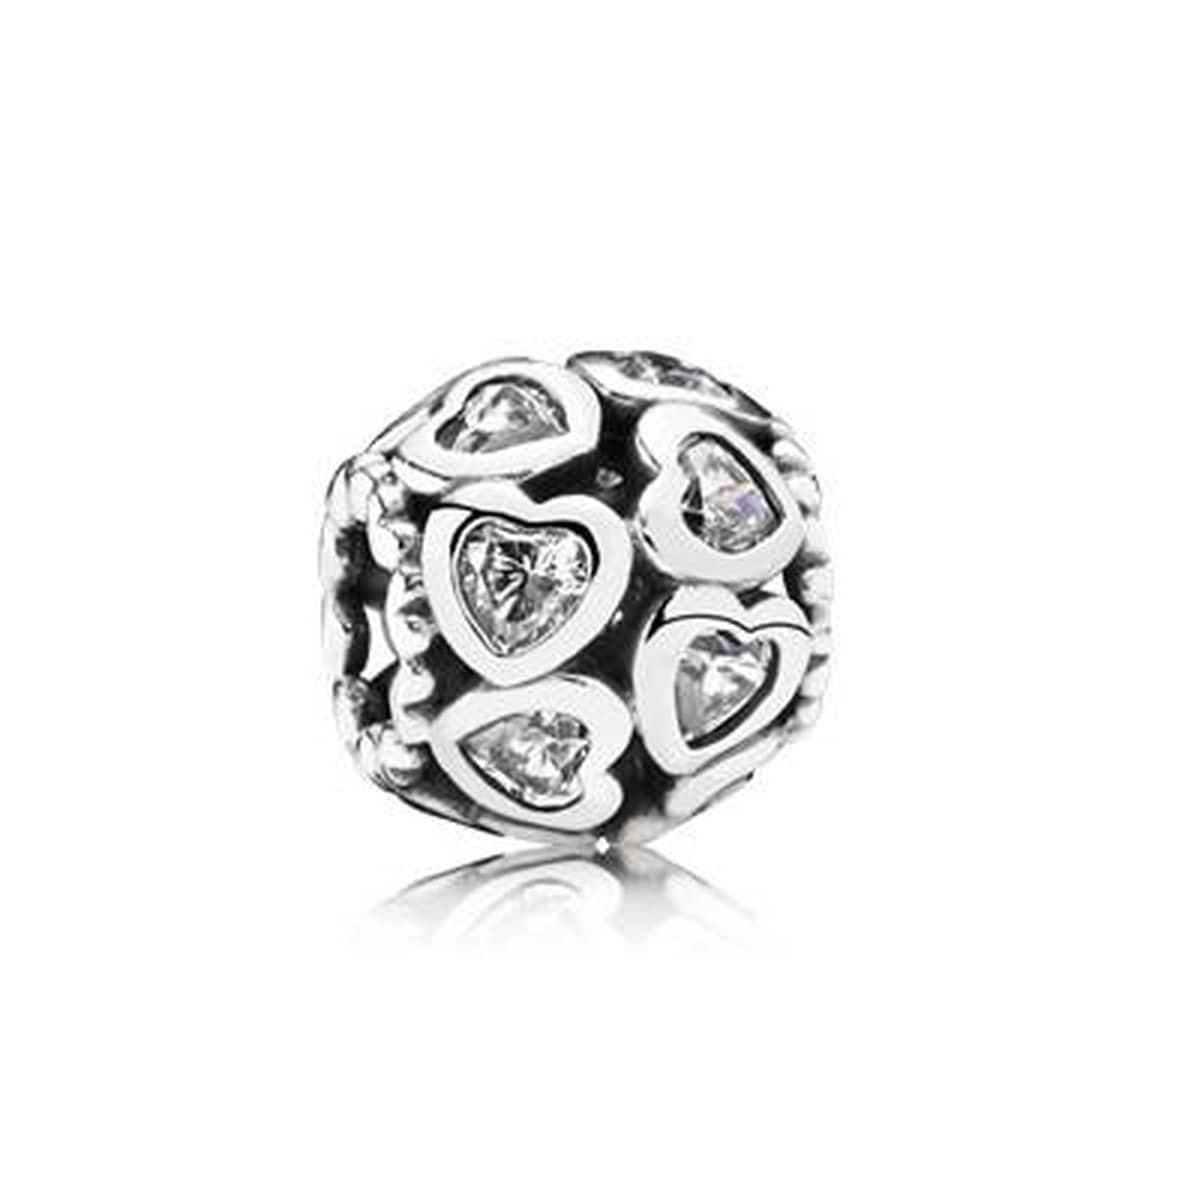 Love All Around Clear Cubic Zirconia Charm - 791250CZ-Pandora-Renee Taylor Gallery